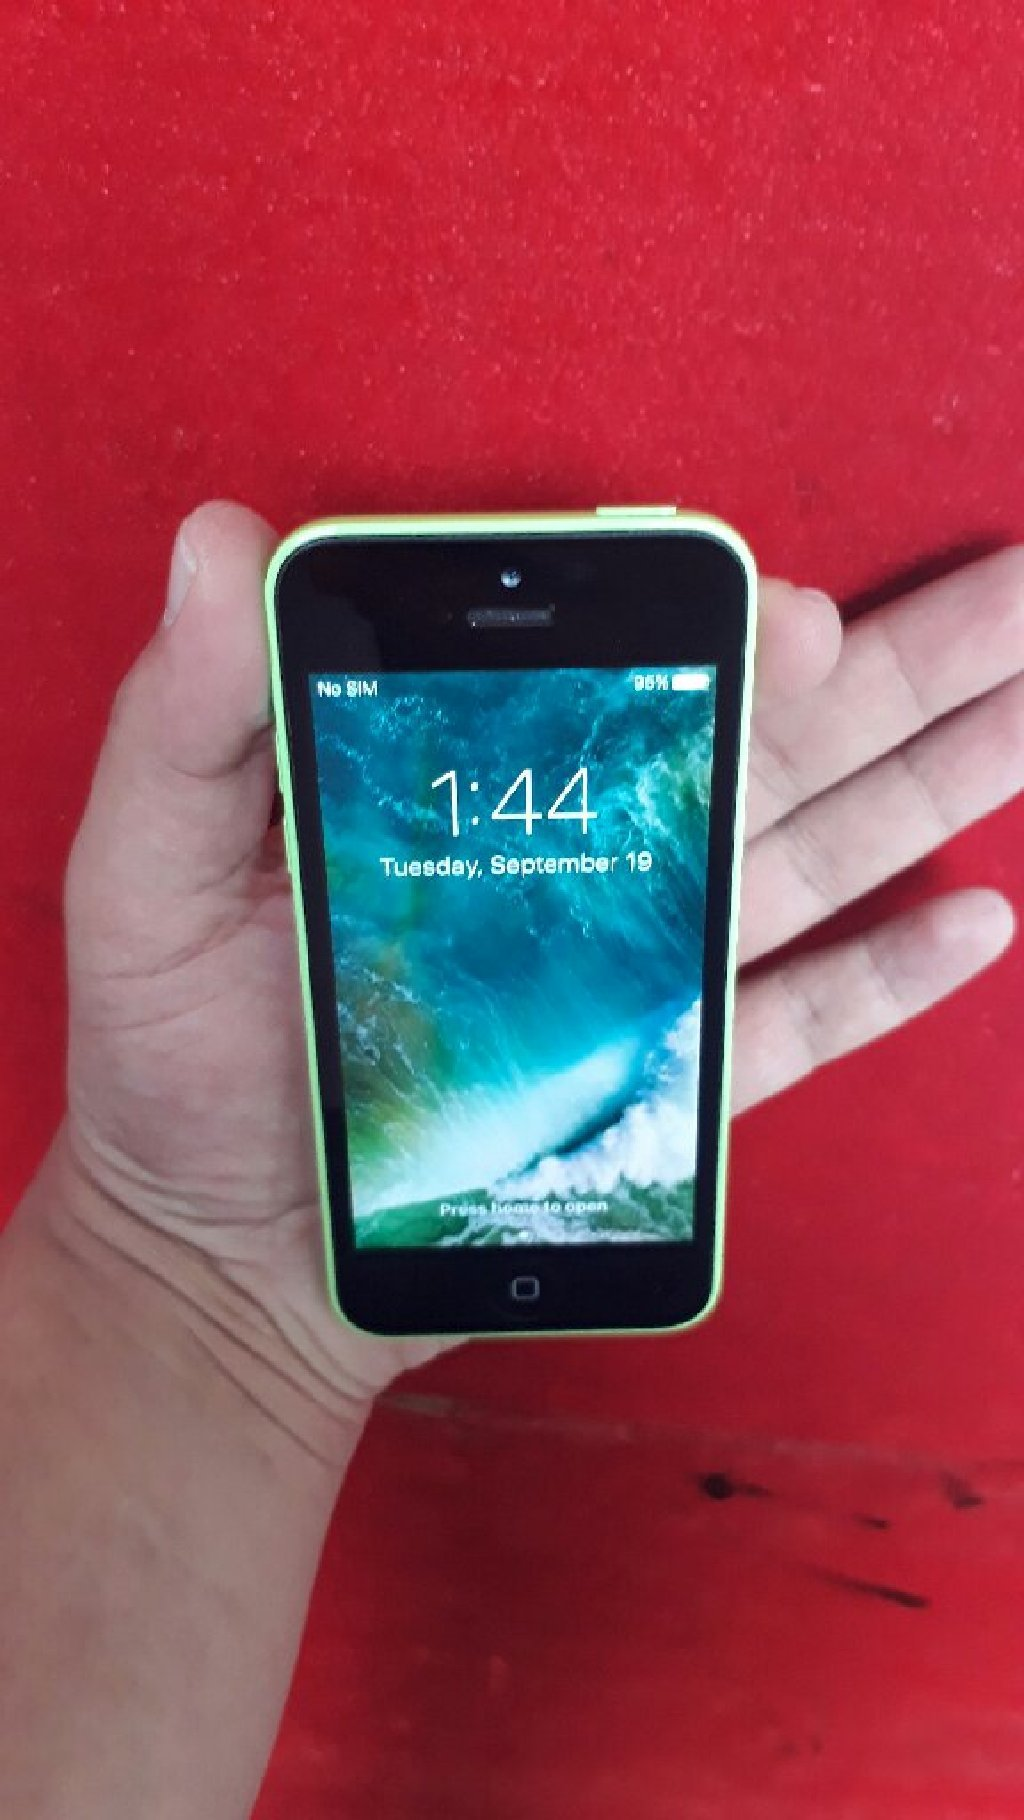 IPhone 5c 16gb original used